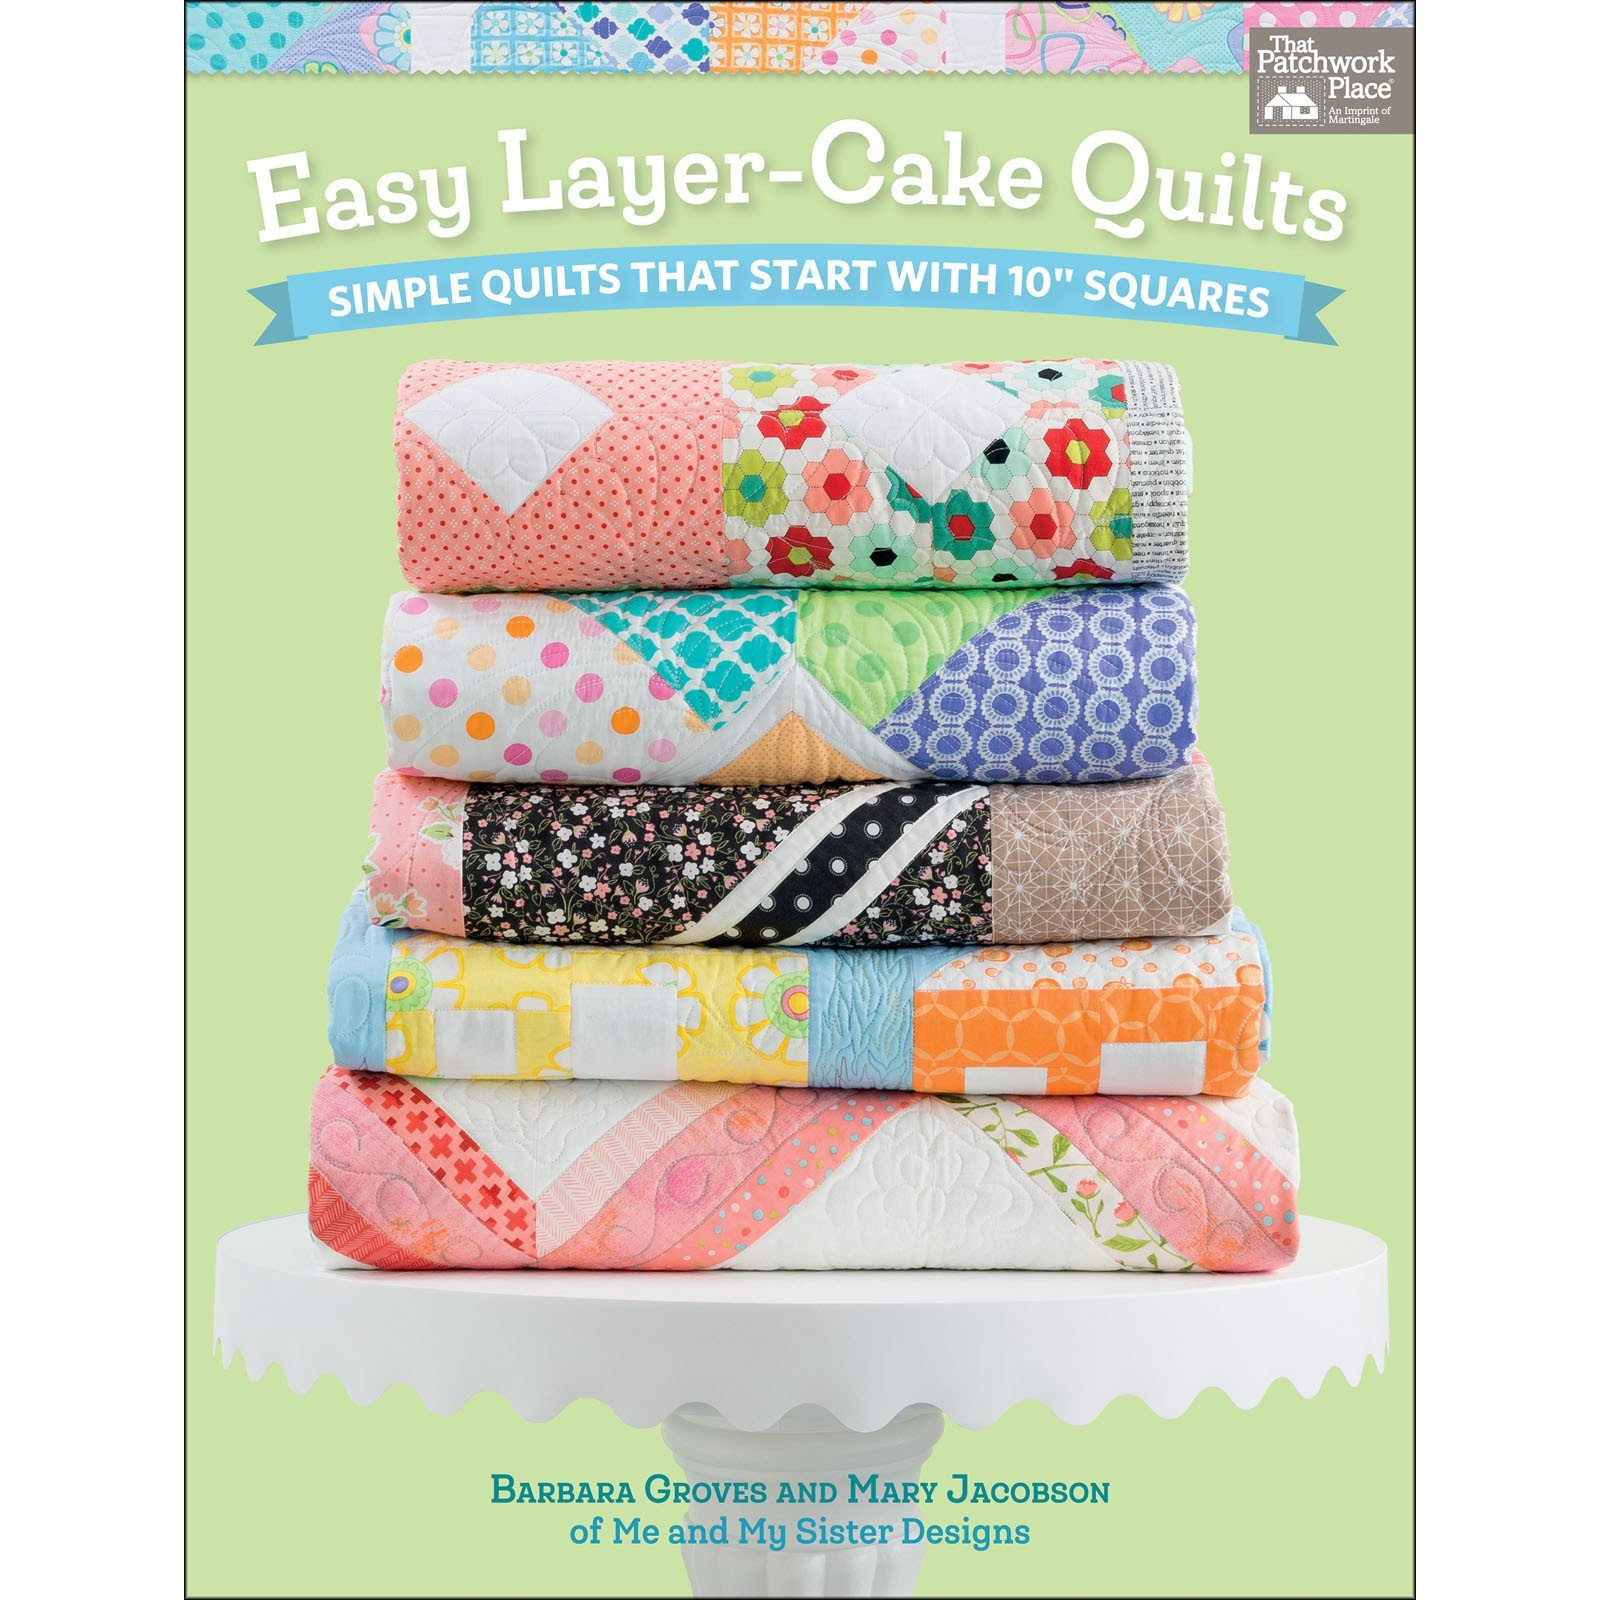 Easy Layer Cake Quilts<br/>B. Groves & M. Jacobson